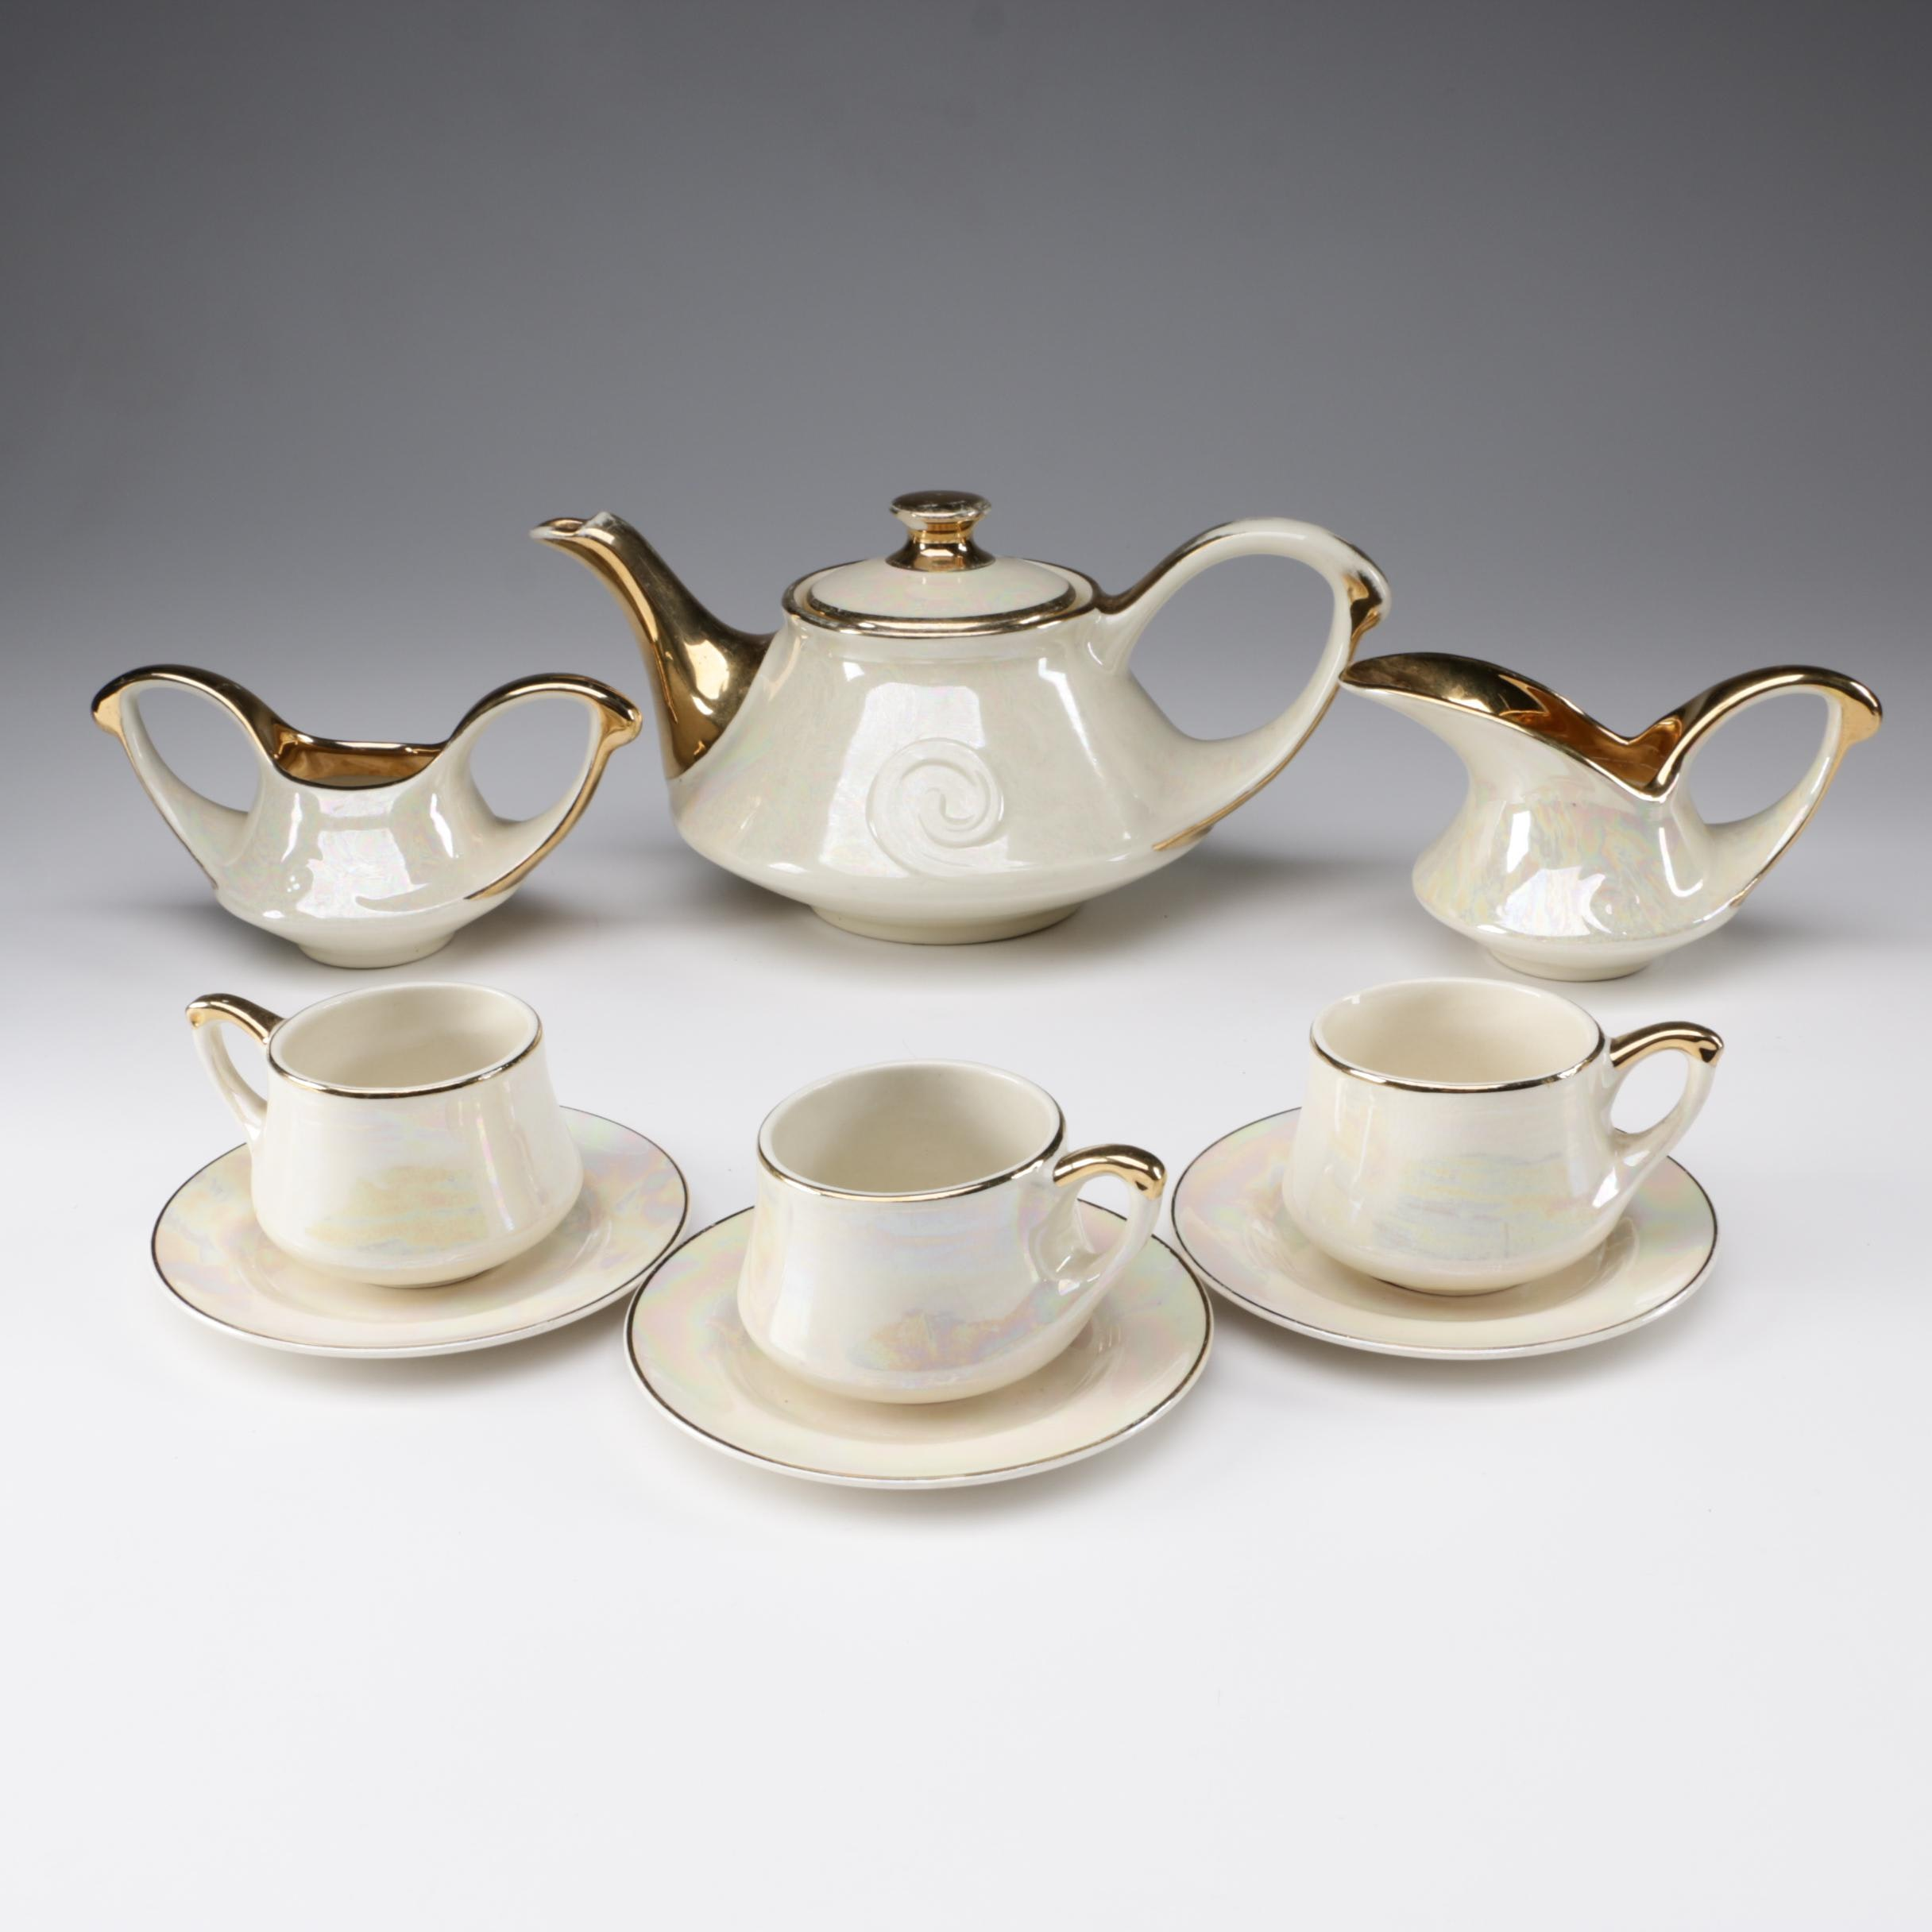 Pearl China Co. Pearlescent Tea Set with Hand Decorated 22K Gold, c.1930s